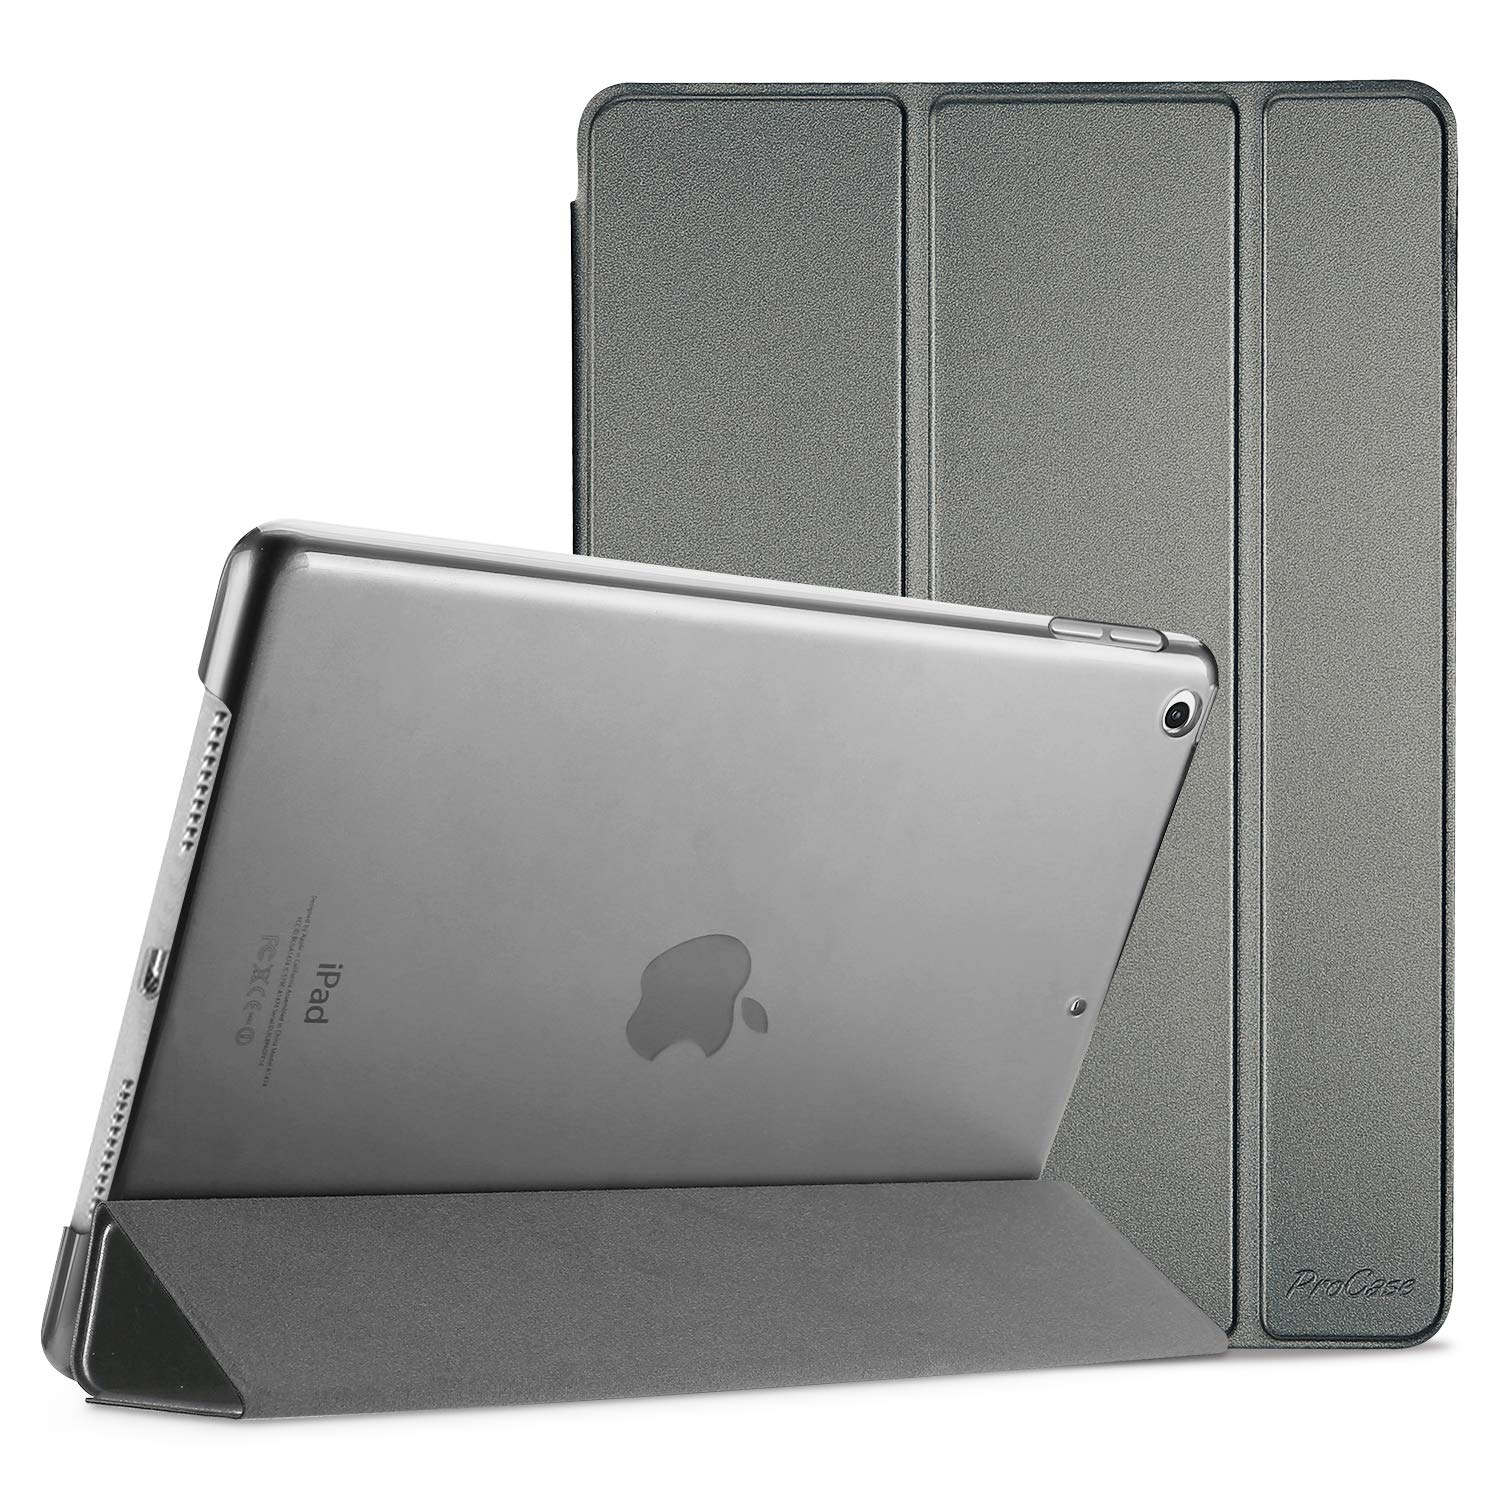 ProCase iPad 10.2 Case 2019 iPad 7th Generation Case, Slim Stand Hard Back Shell Protective Smart Cover Case for iPad 7th Gen 10.2 Inch 2019 (A2197 A2198 A2200) –Metallic